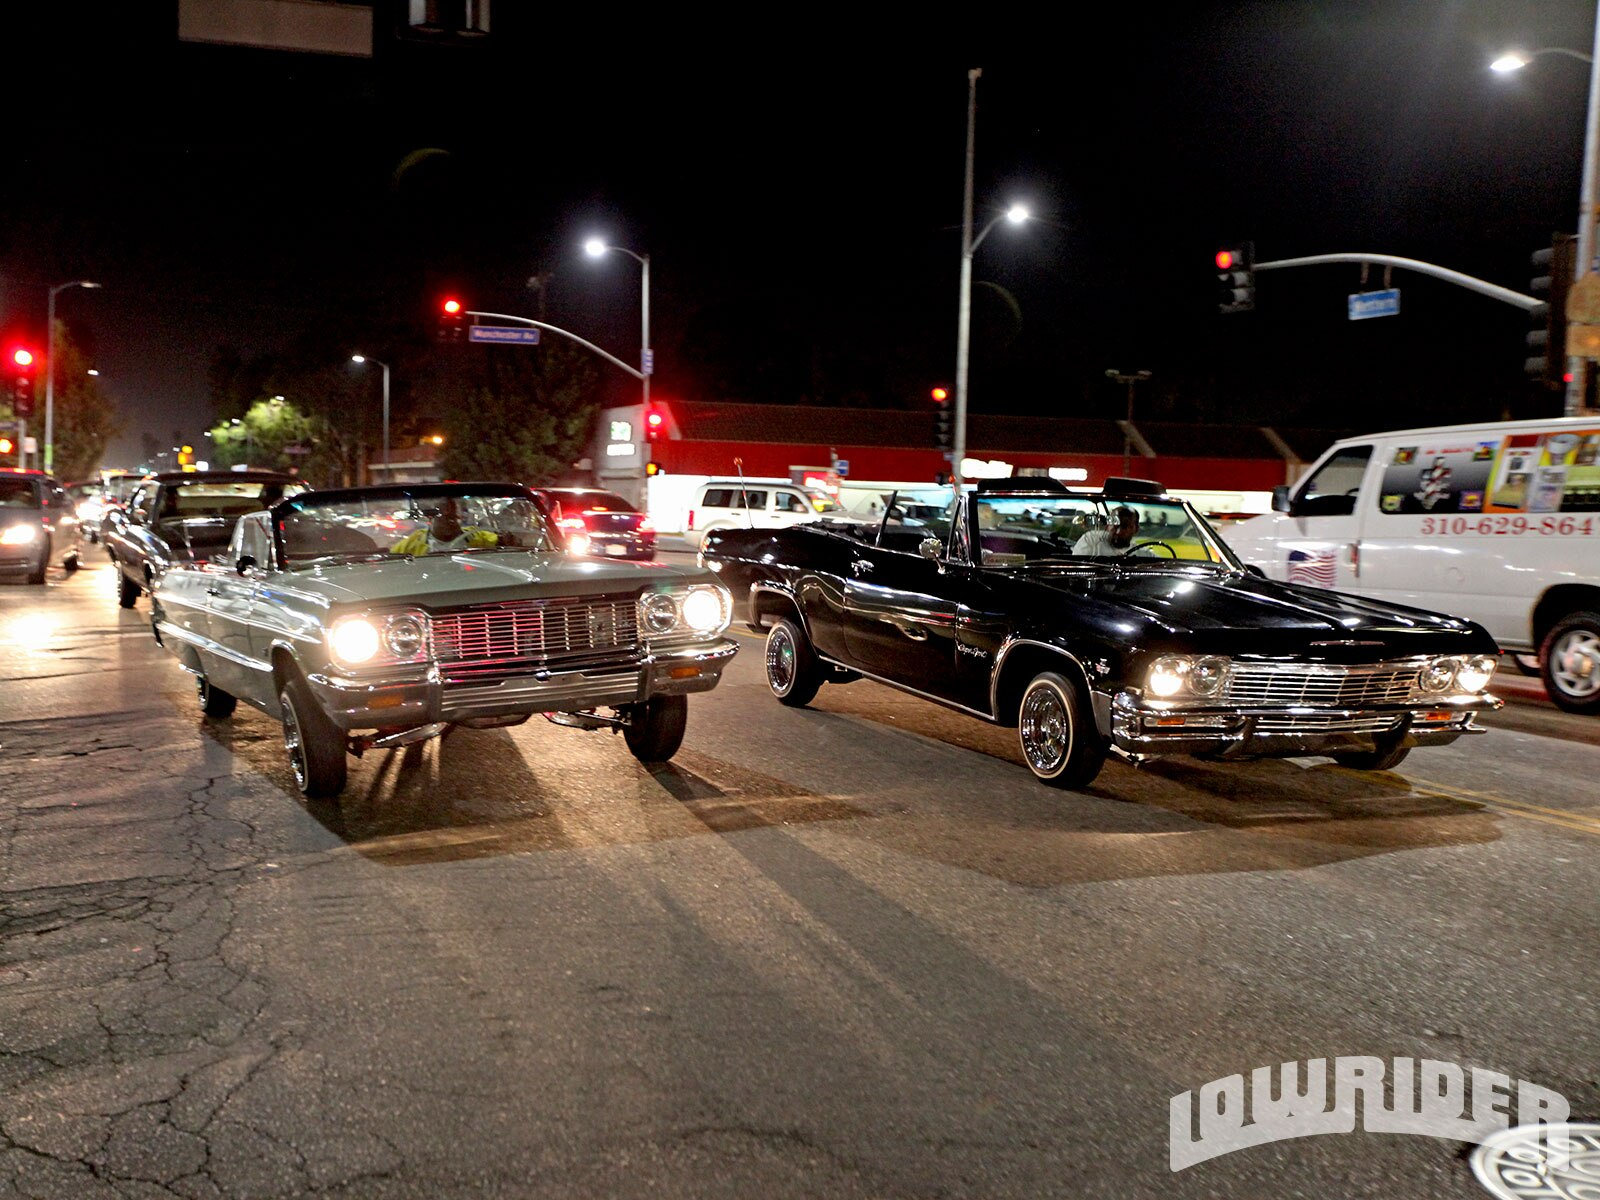 1303-lrmp-01-o-lowrider-street-cred-south-central-LA-double-lowriders1